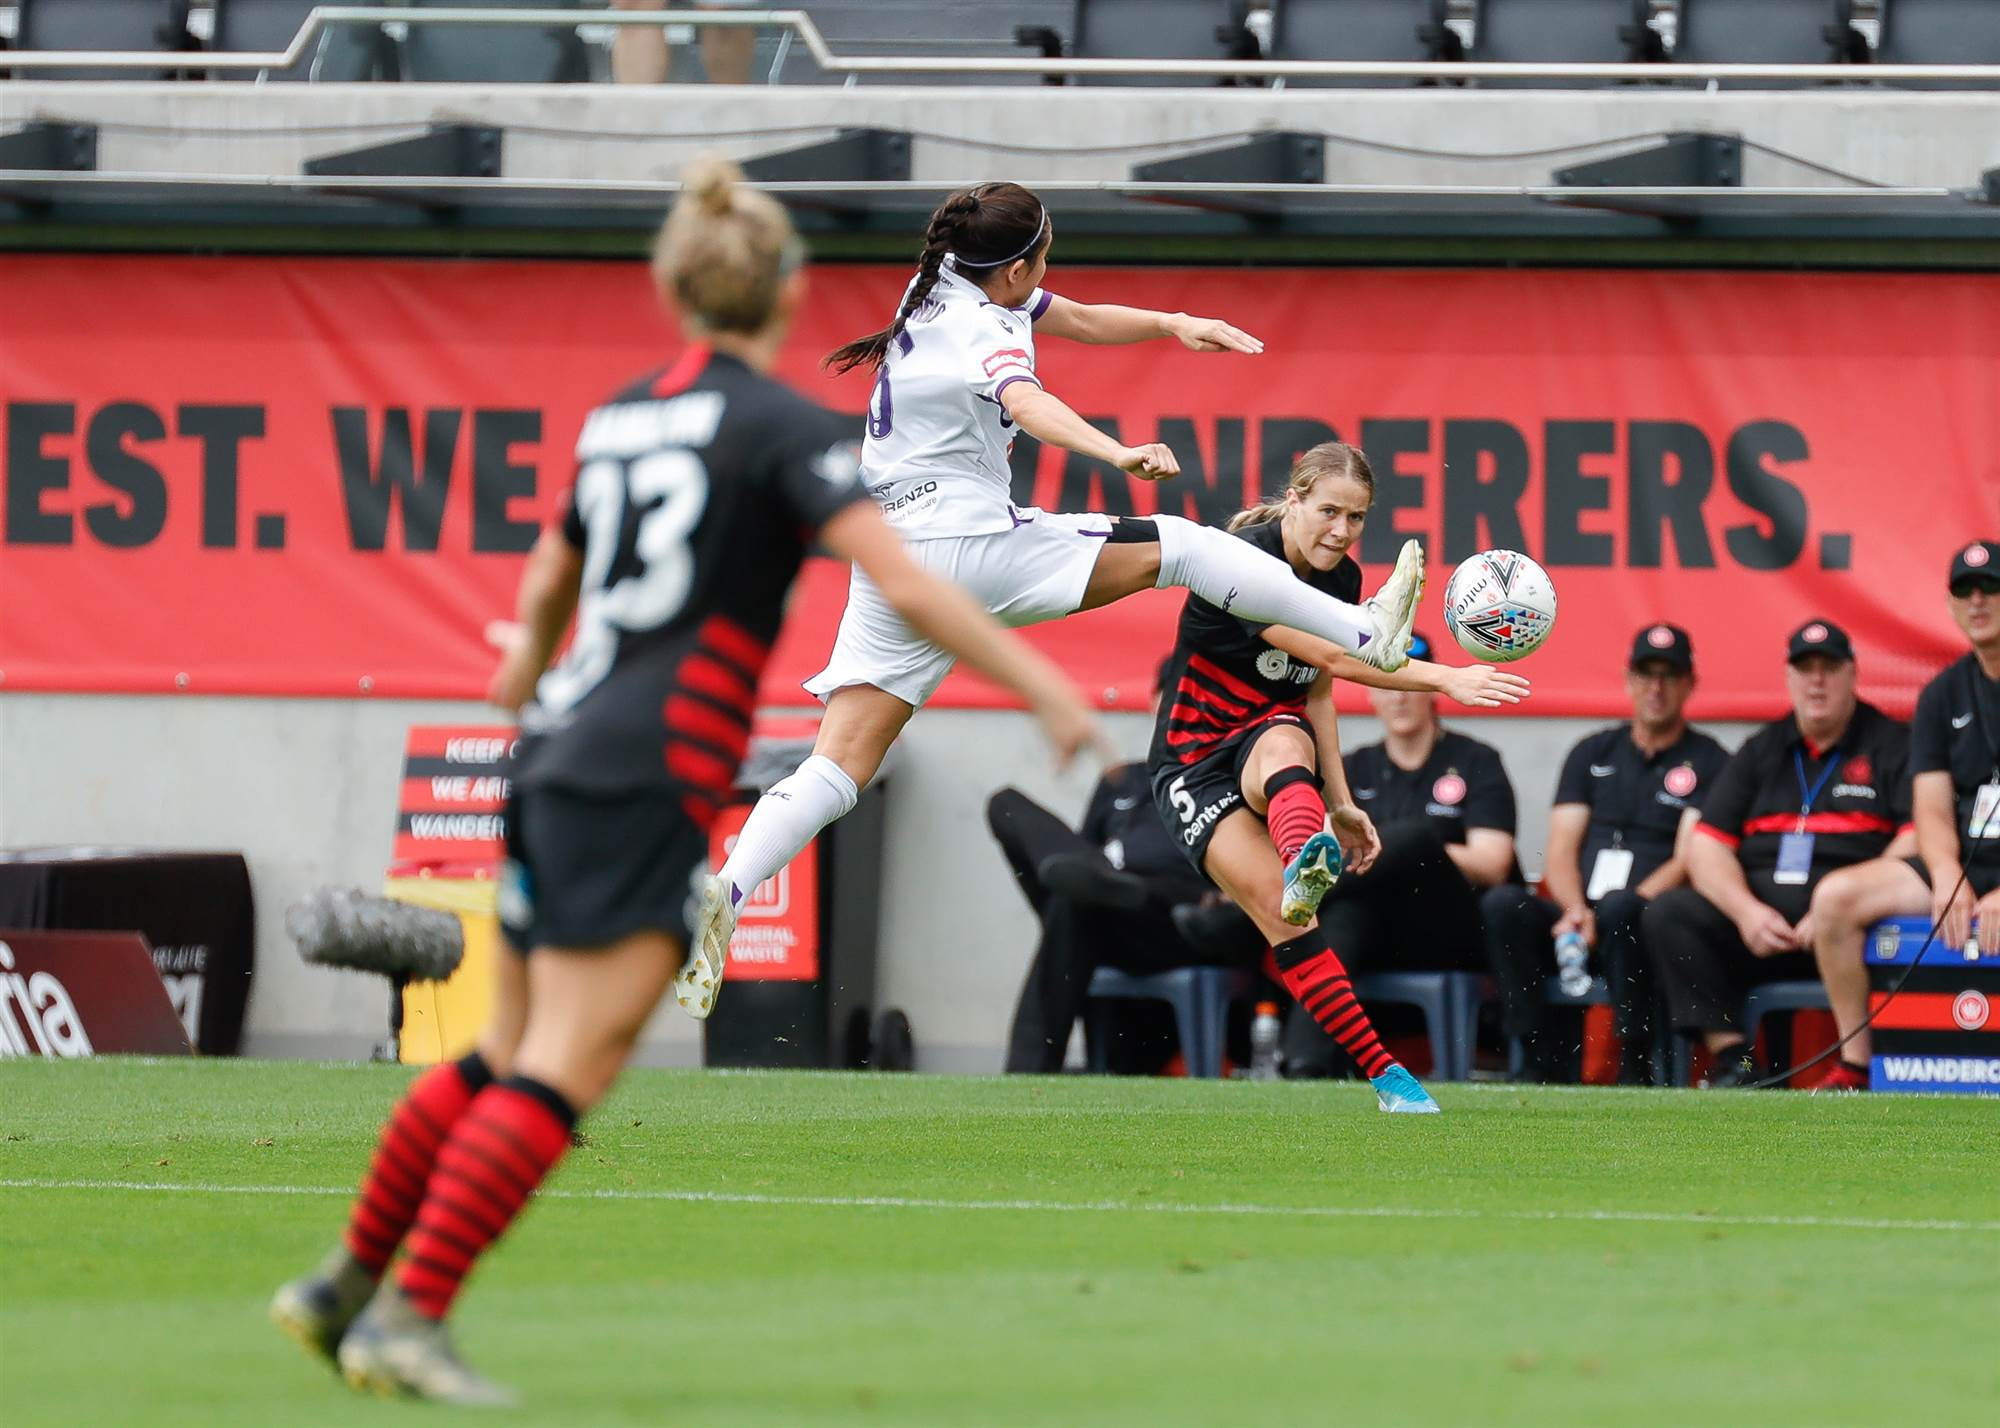 Awesome Sideline Gallery: Western Sydney Wanderers vs Perth Glory